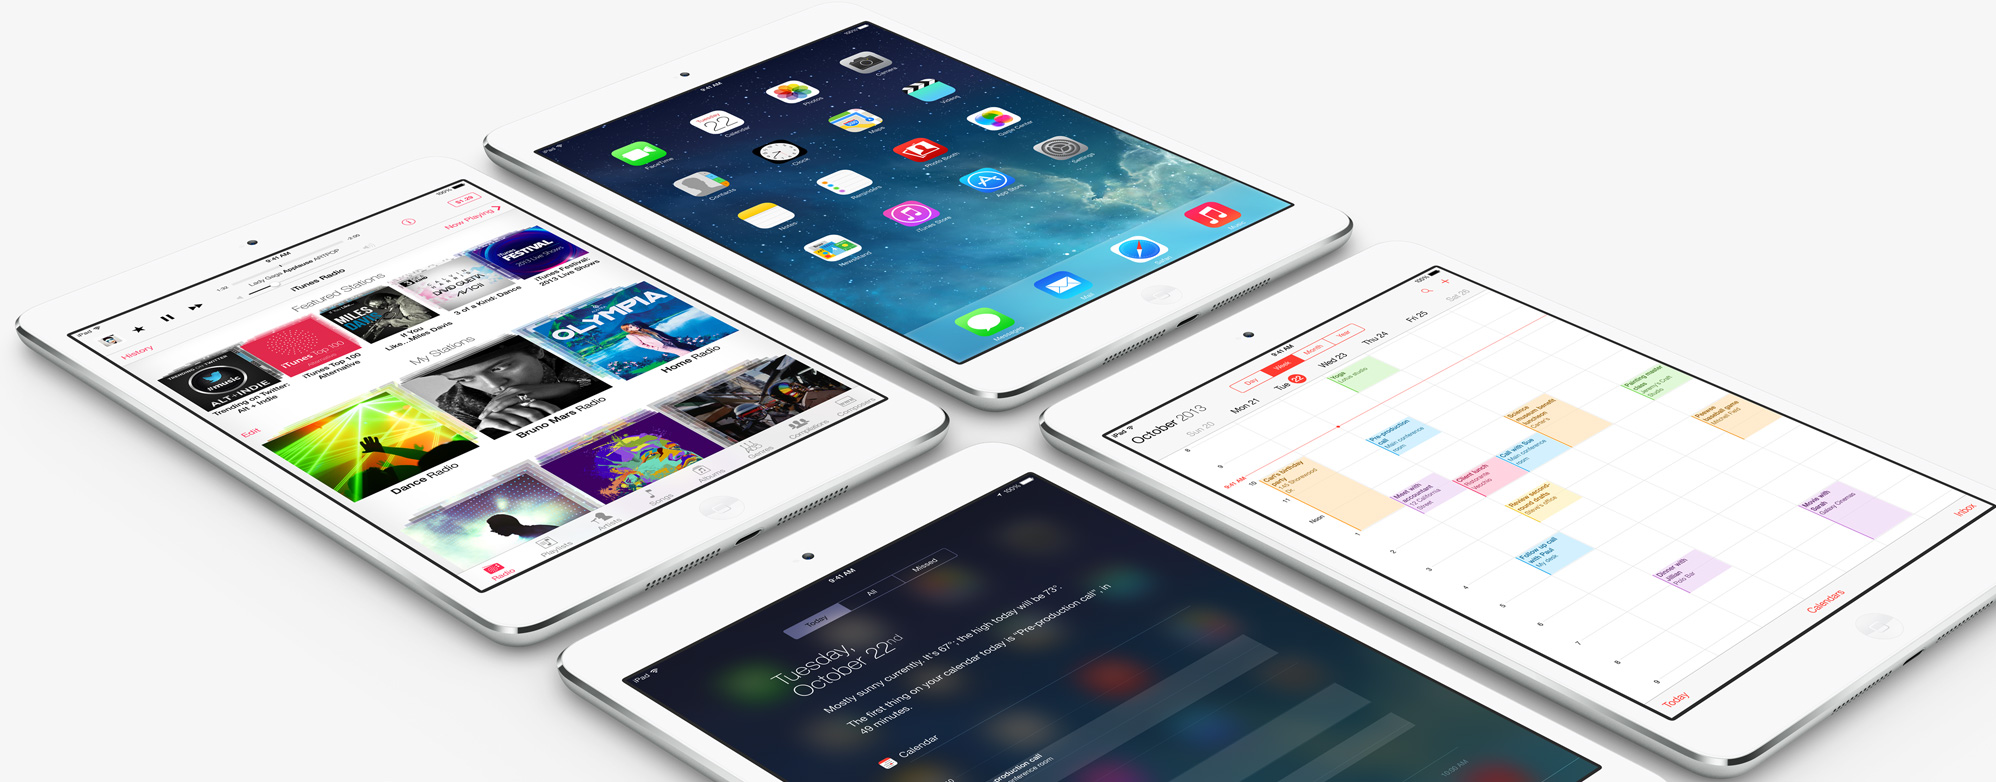 four iPad mini retina display